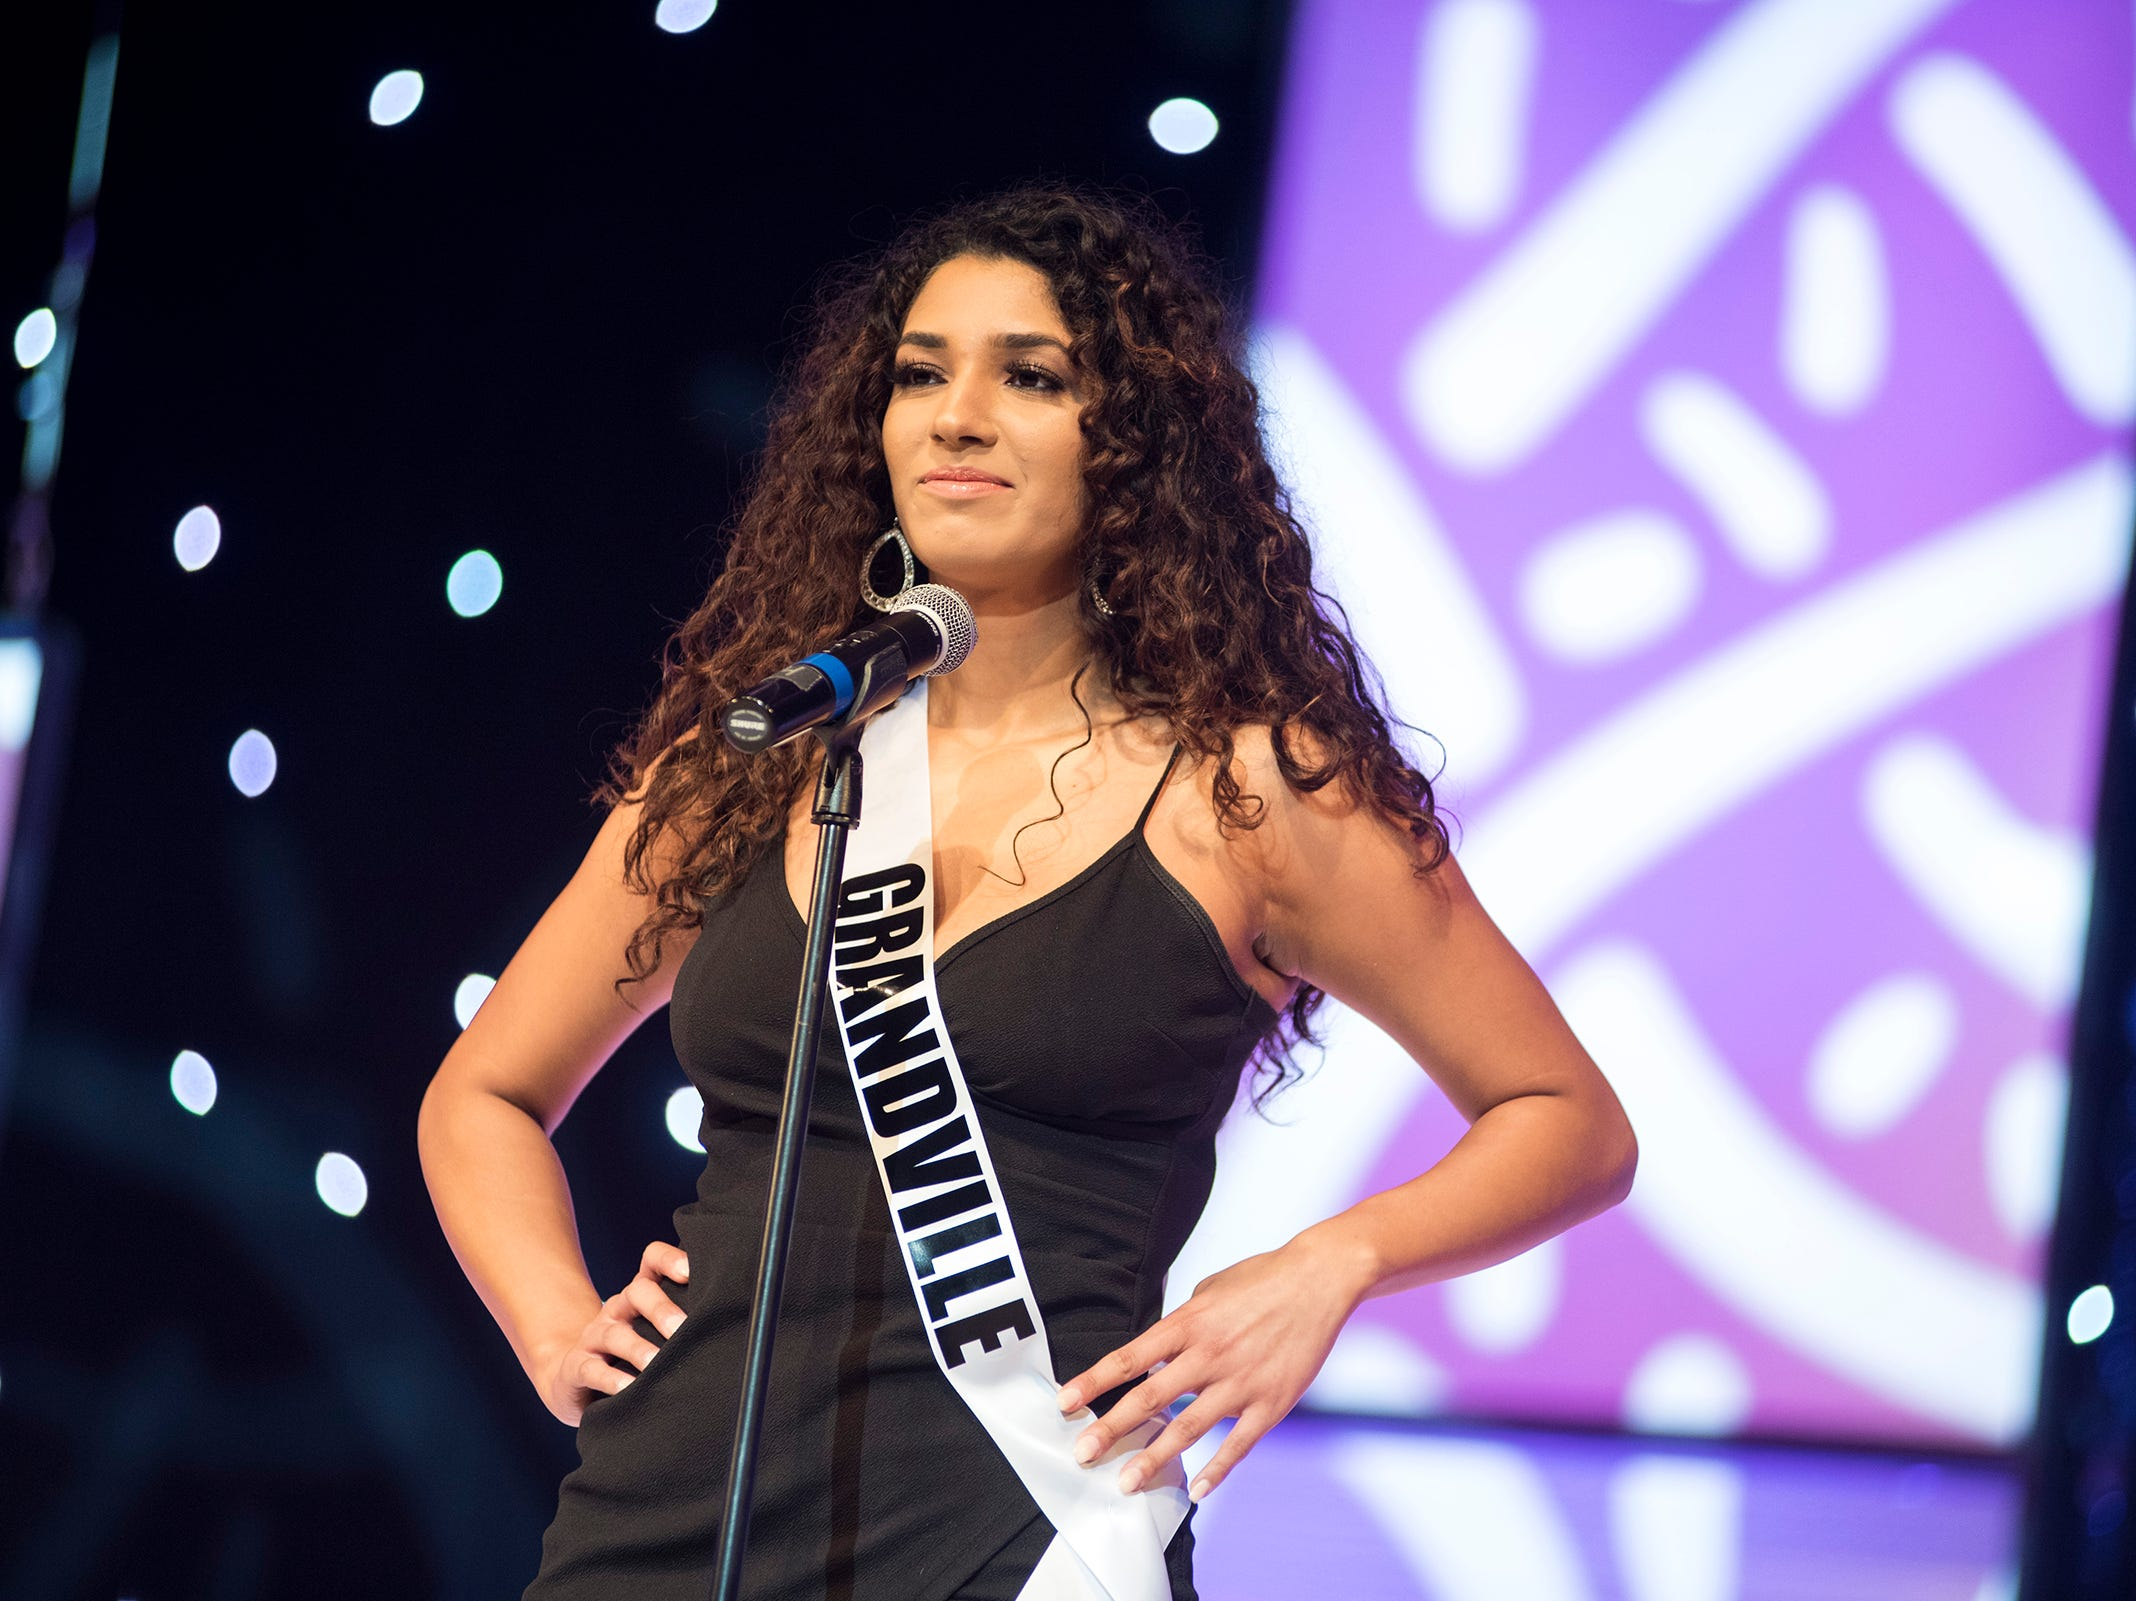 Miss Grandville Ariana Martinez introduces herself Saturday, Sept. 22, 2018 at the start of the Miss Michigan USA competition at McMorran Theater.